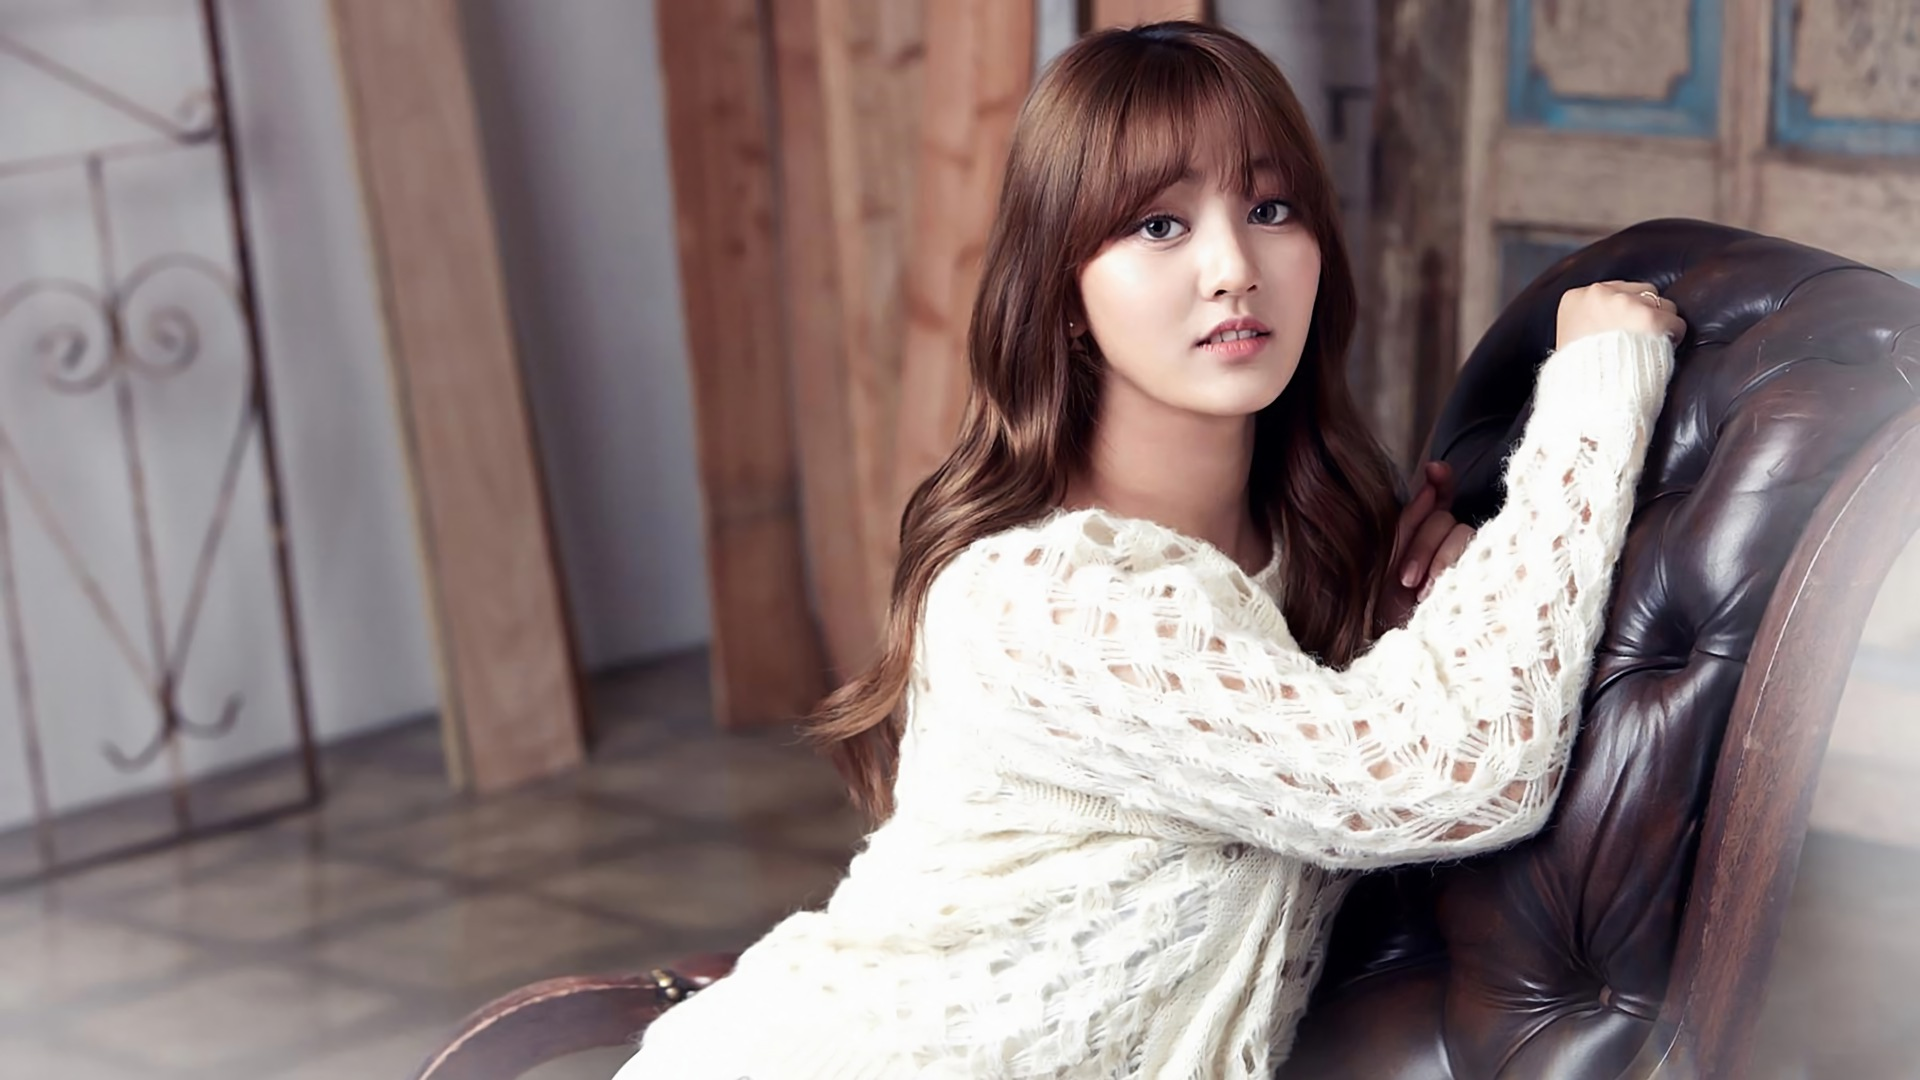 Jihyo Twice Images Twice Jihyo Hd Wallpaper And Background Photos